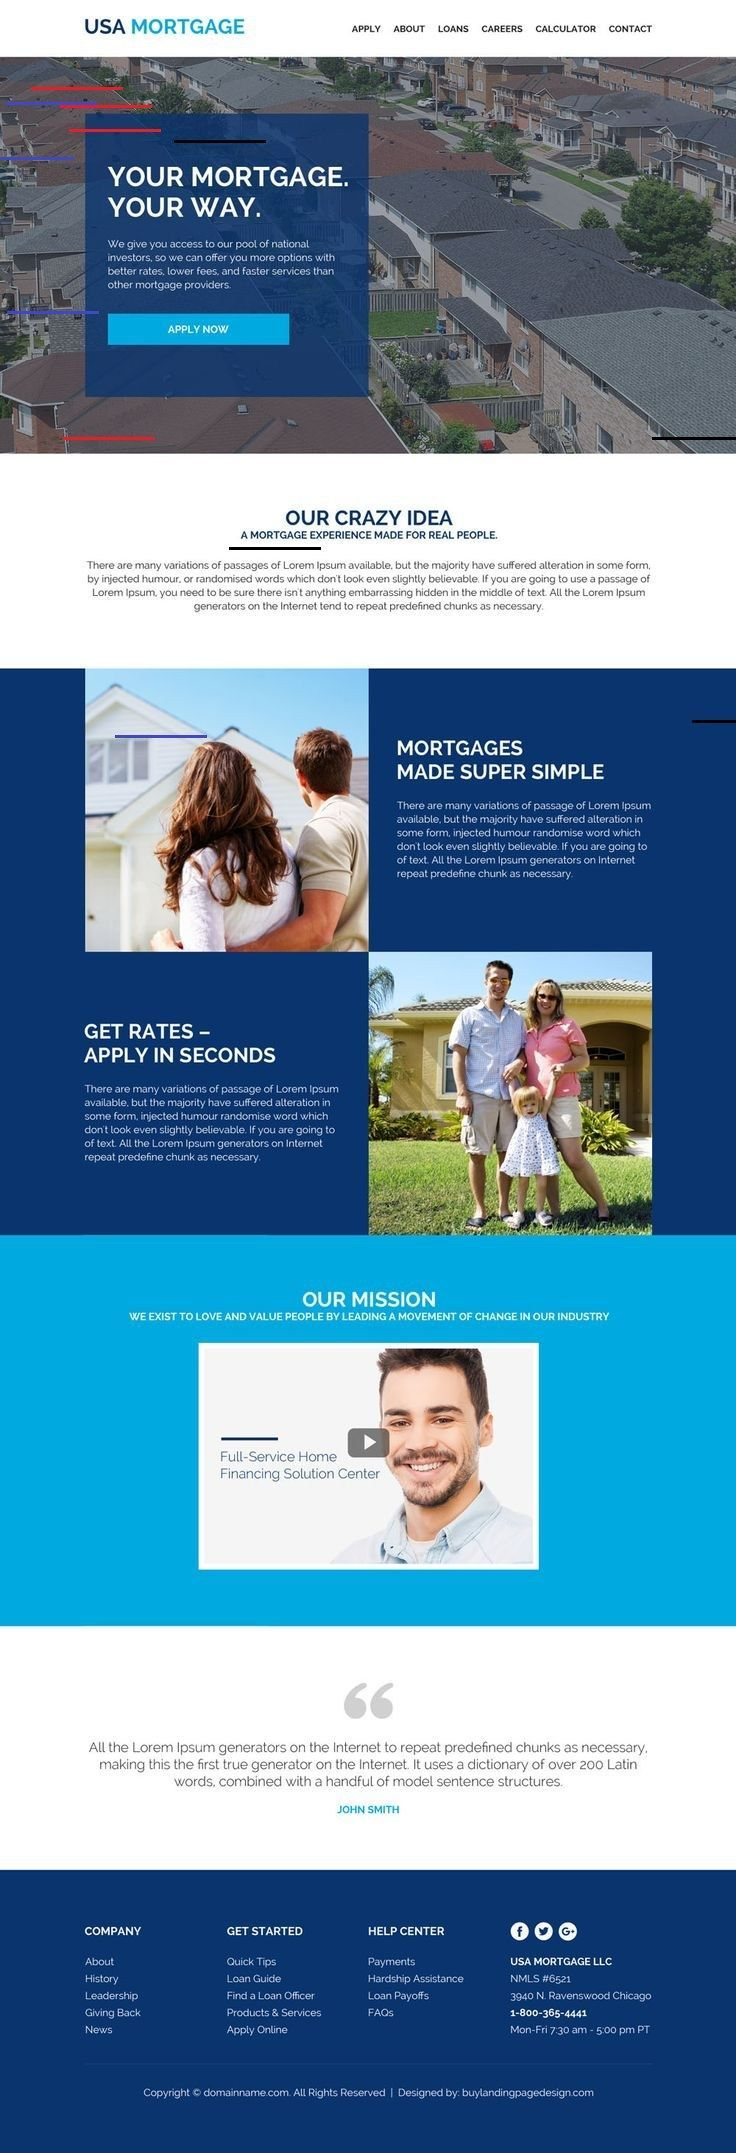 Pin On Mortgage Payoff 5 Years Shopping